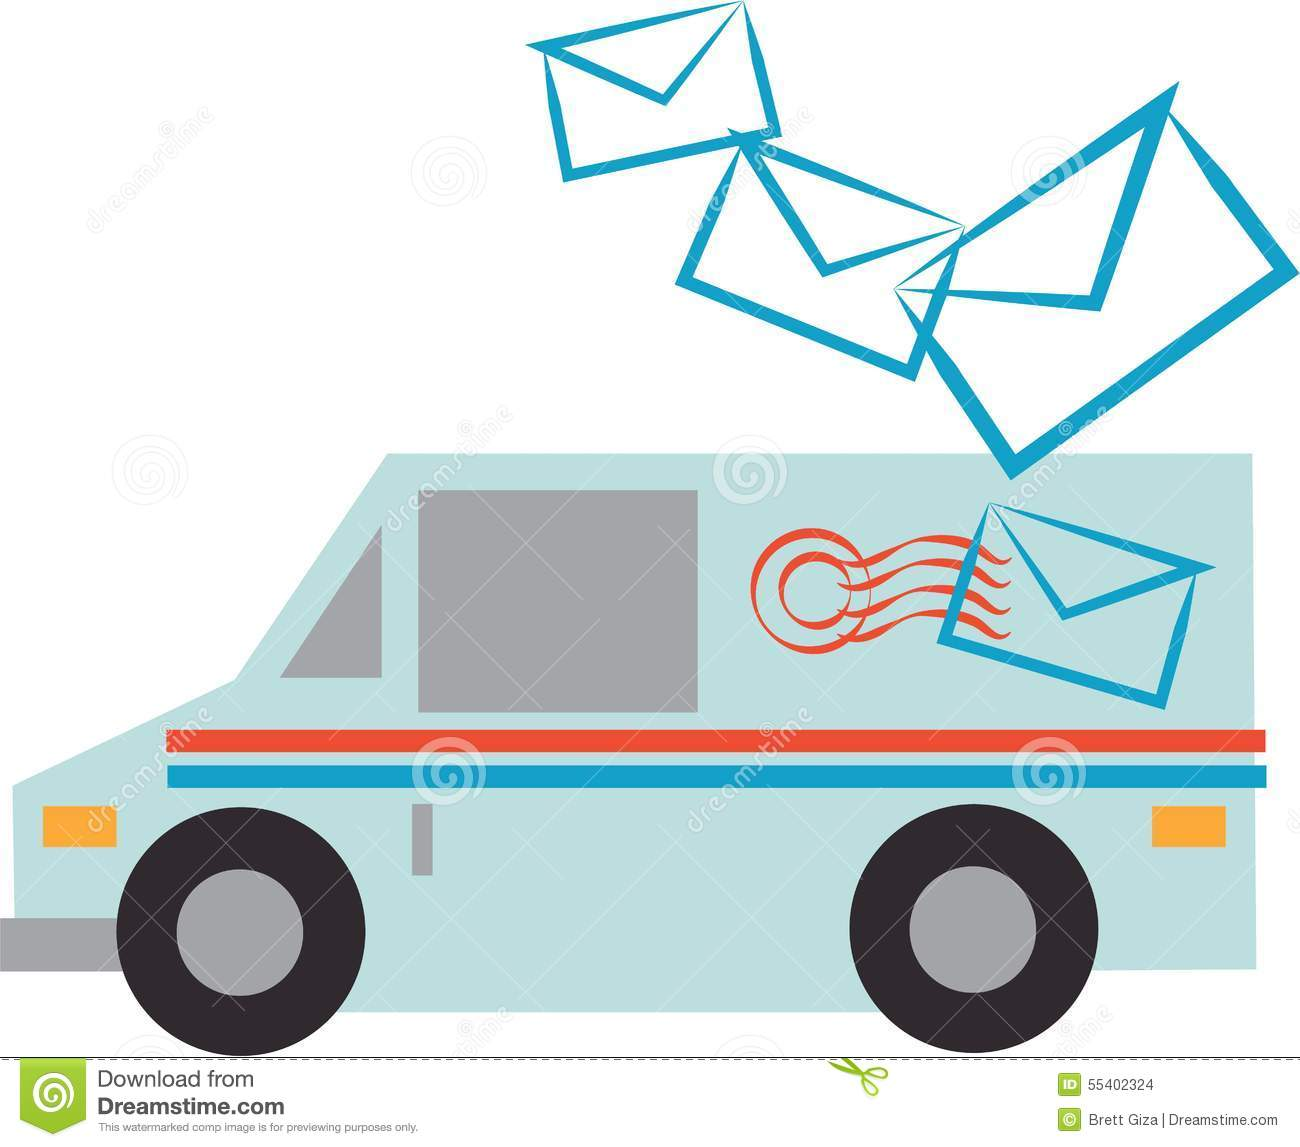 Mail Truck Stock Illustration - Image: 55402324Usps Delivery Truck Clipart